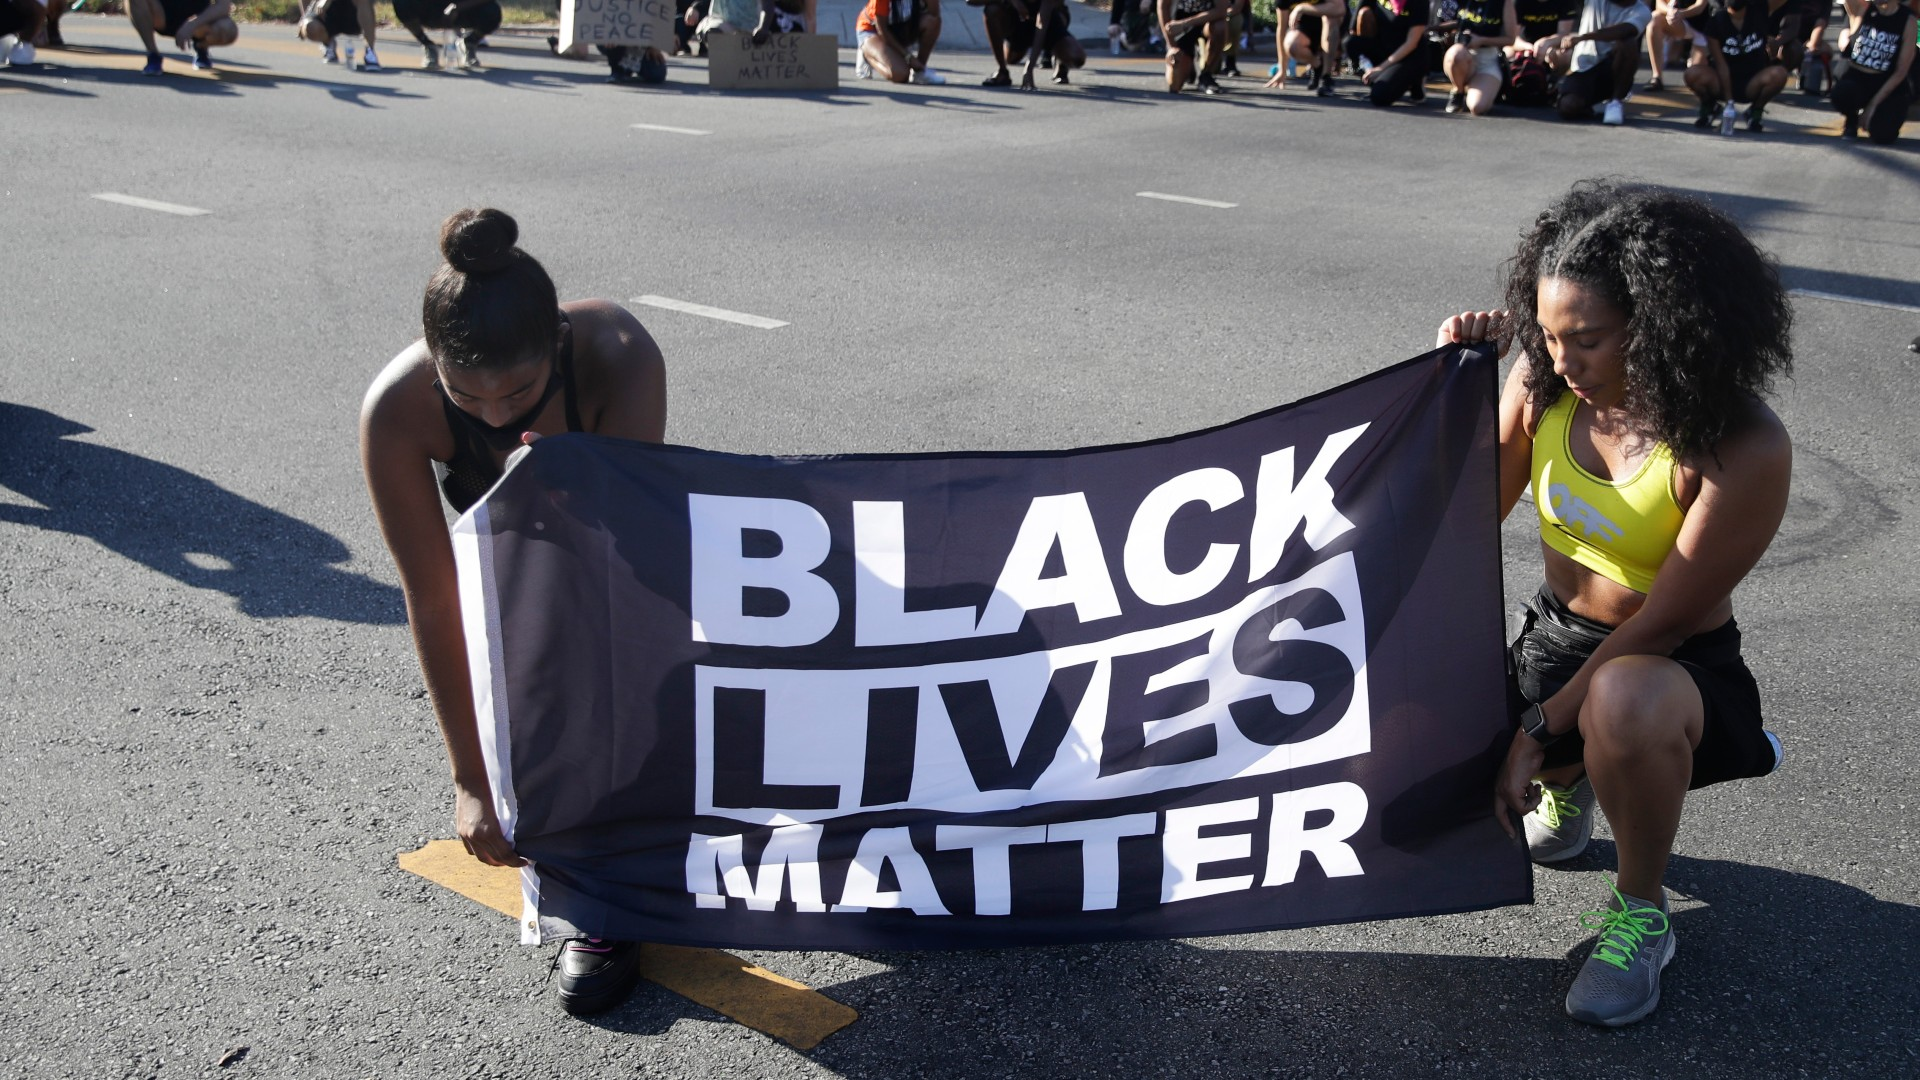 In this July 11, 2020 file photo, Alycia Pascual-Pena, left, and Marley Ralph kneel while holding a Black Lives Matter banner during a protest in memory of Breonna Taylor, in Los Angeles. Taylor was killed in her apartment by members of the Louisville, Ky., Metro Police Department on March 13. (AP Photo/Marcio Jose Sanchez, File)